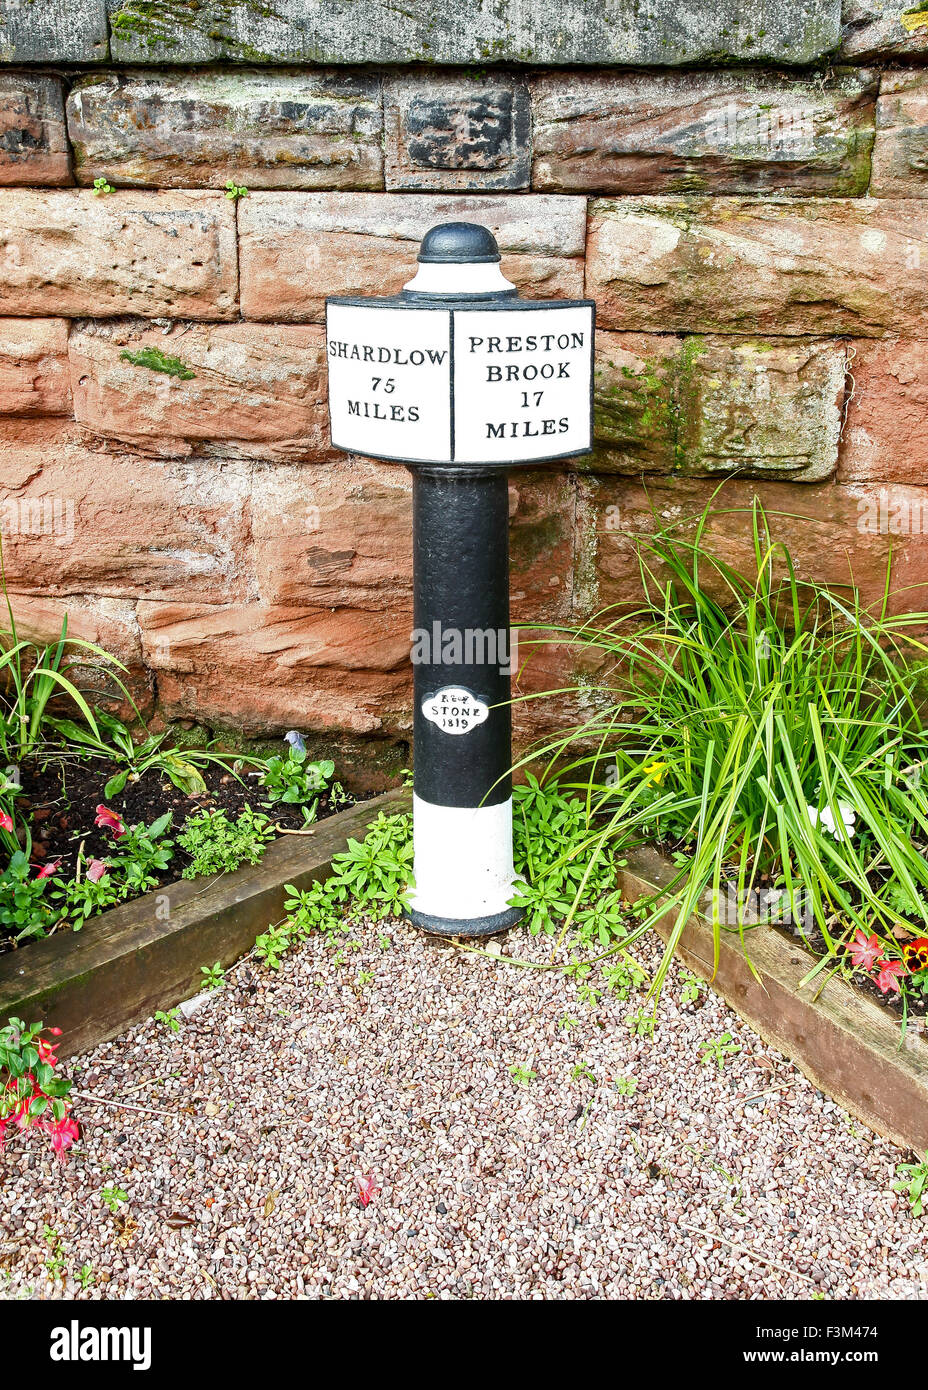 A sign post saying Shardlow 75 miles and Preston Brook 17 miles on the Trent and Mersey Canal Middlewich Cheshire - Stock Image